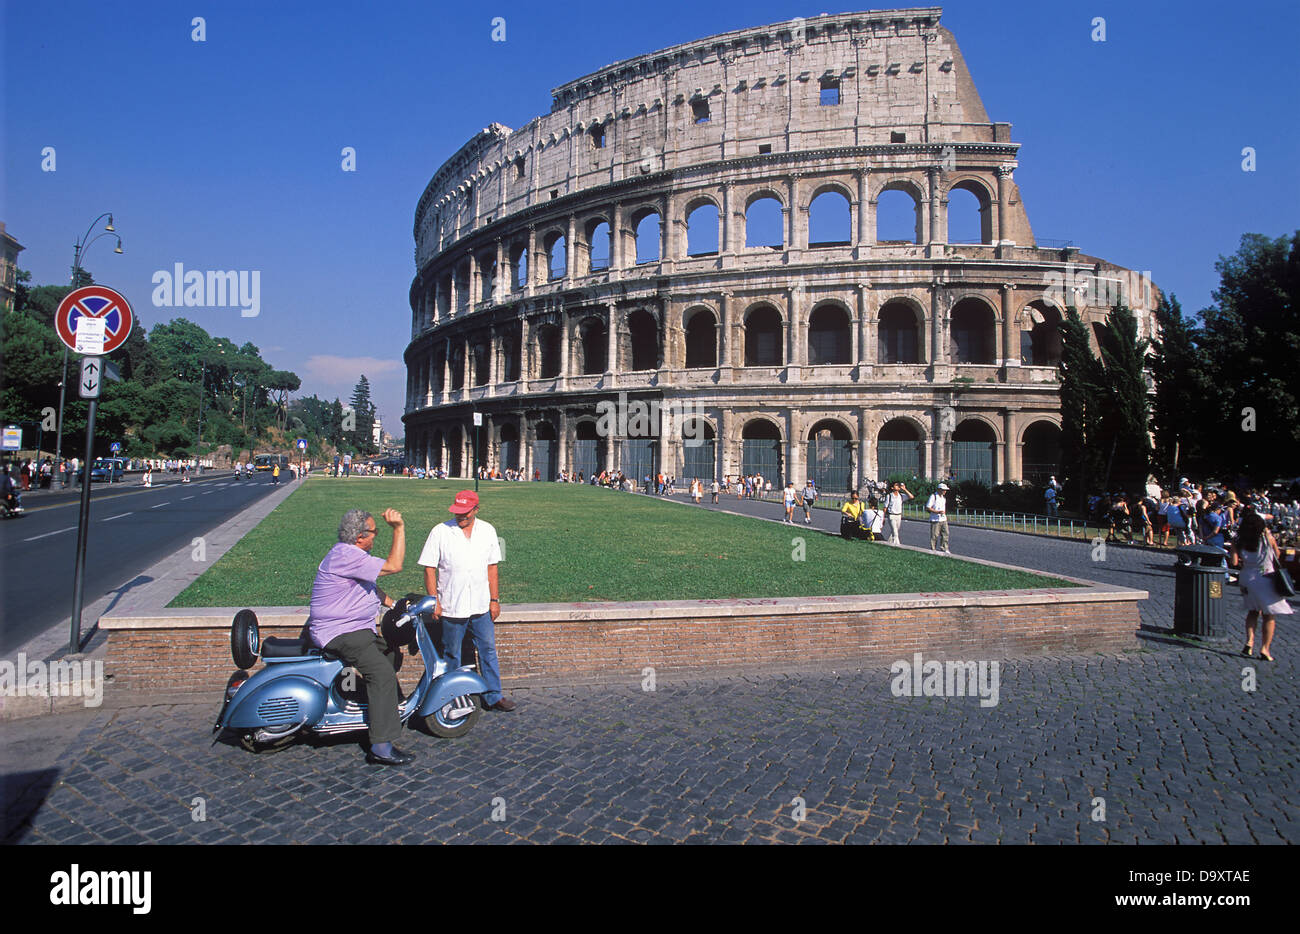 Colosseum Rome Italy - Stock Image